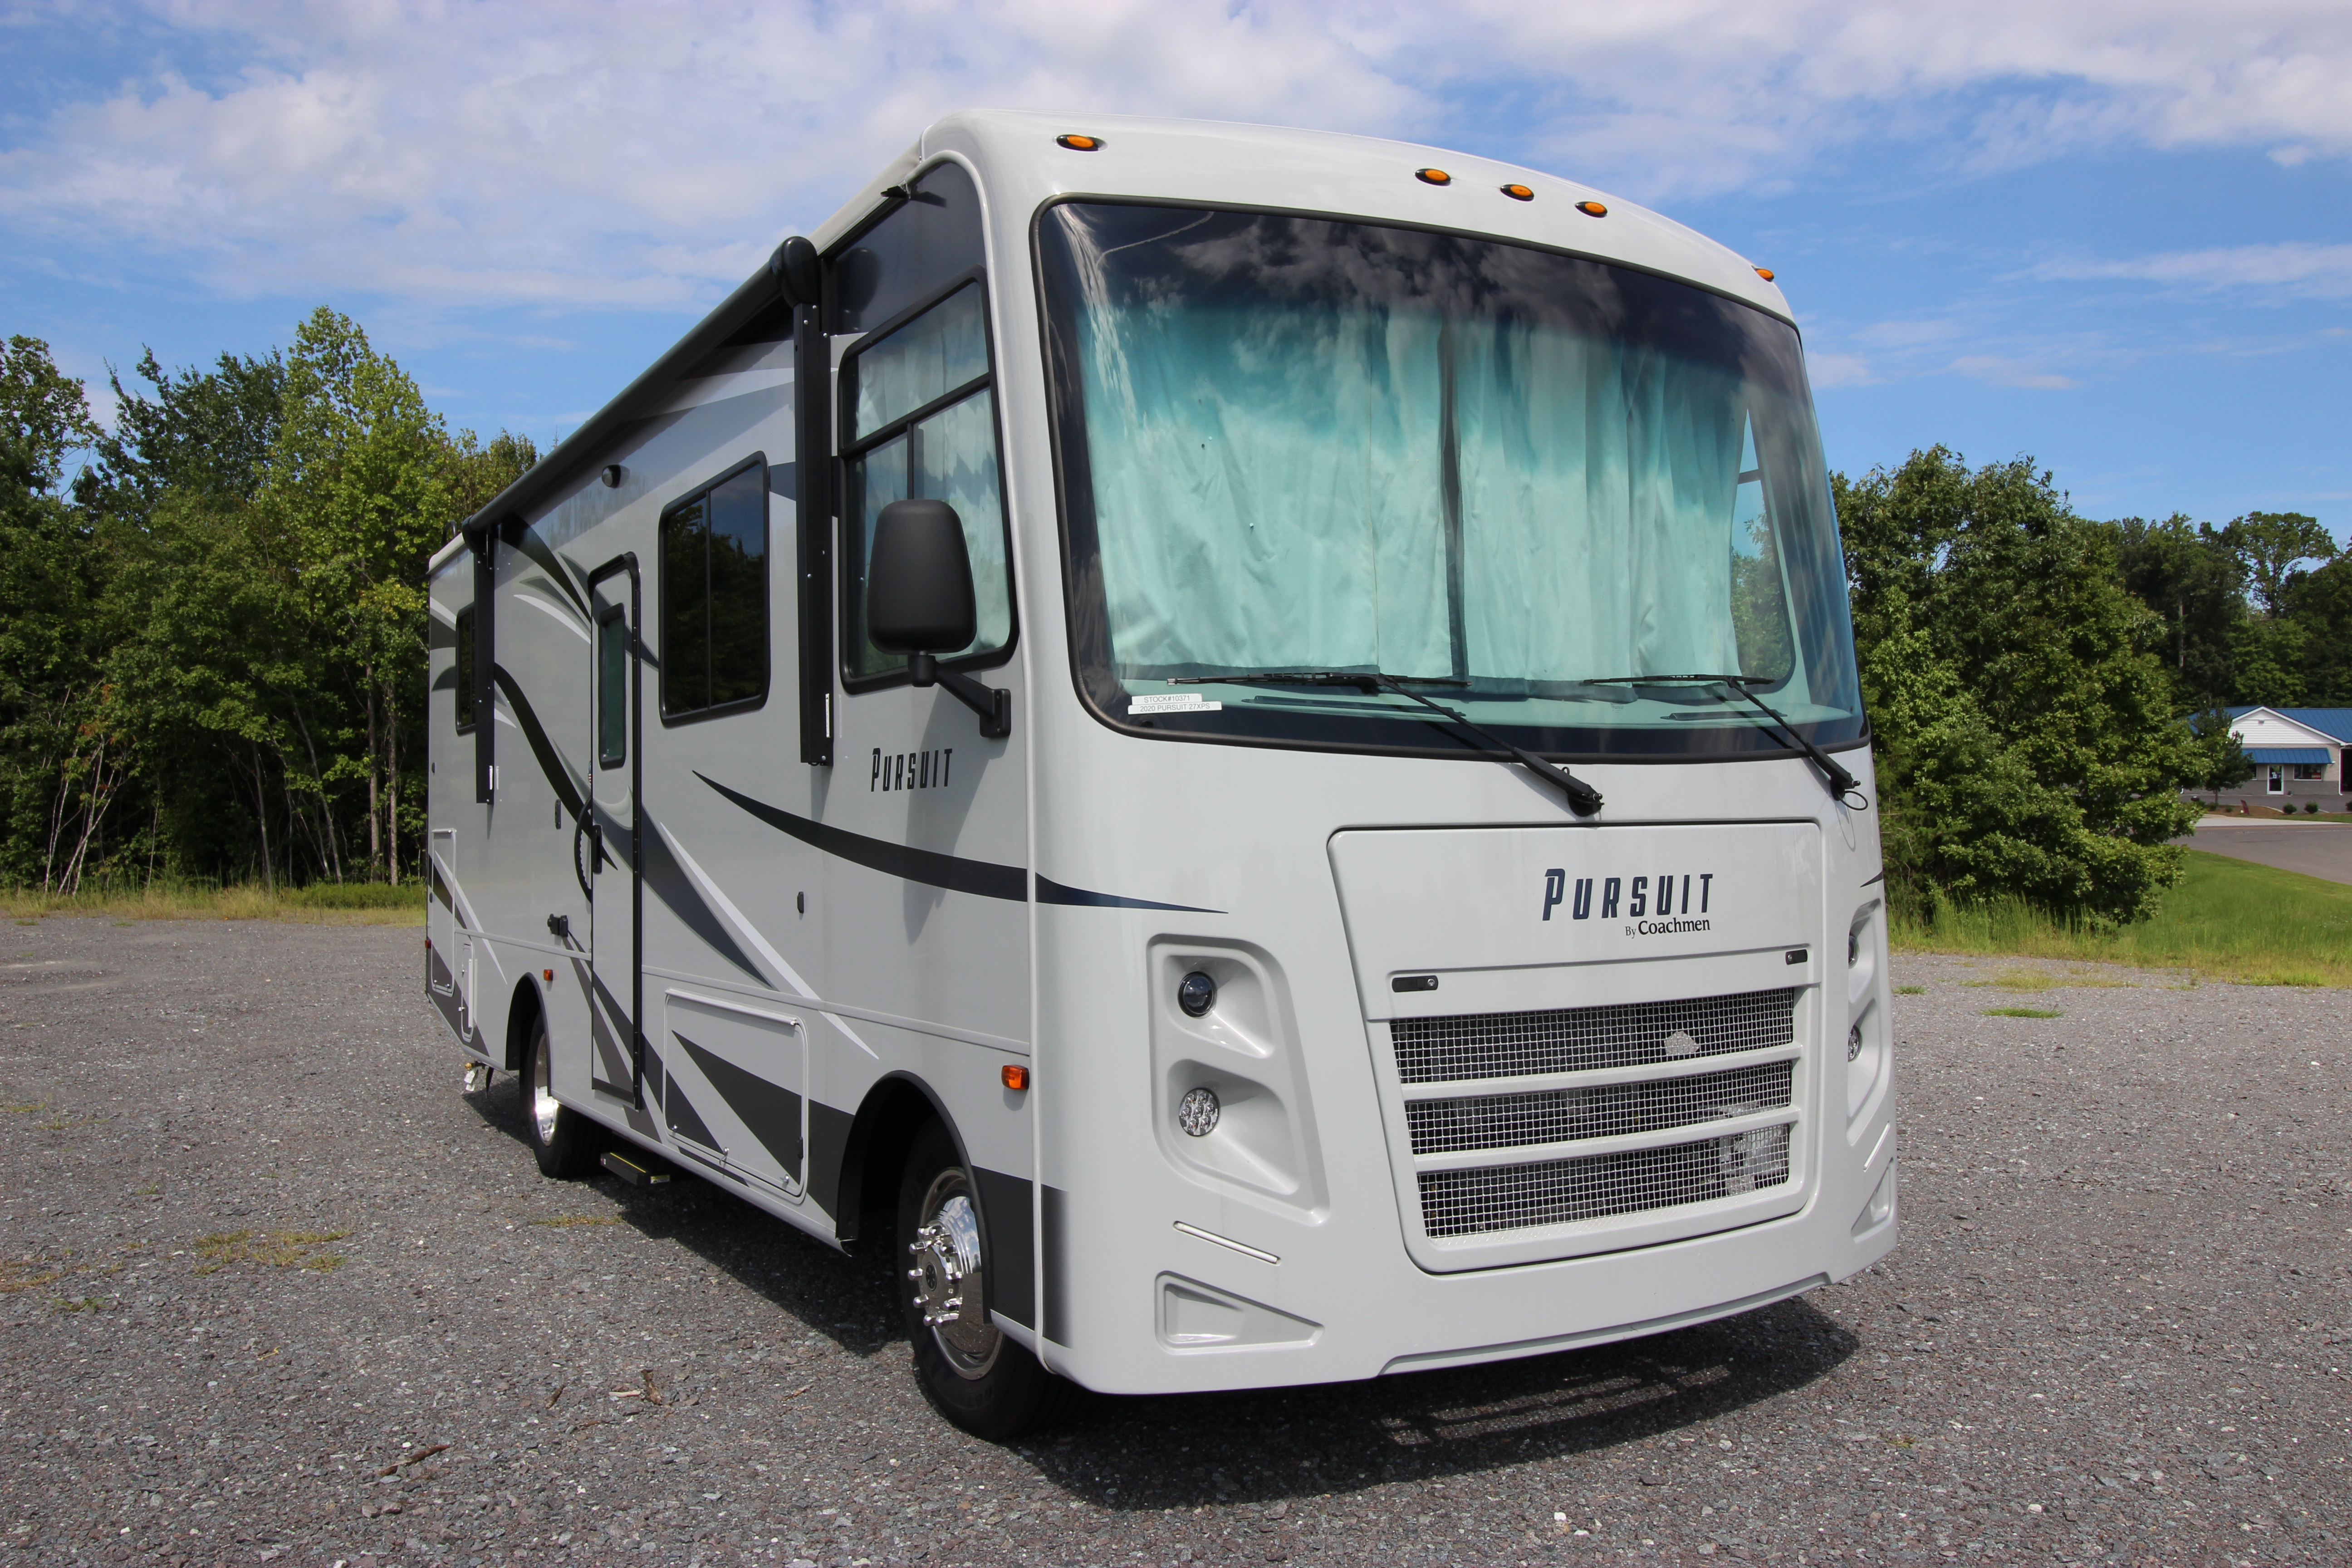 2020 Coachman Pursuit 27XPS - Class A Gas Motorhome